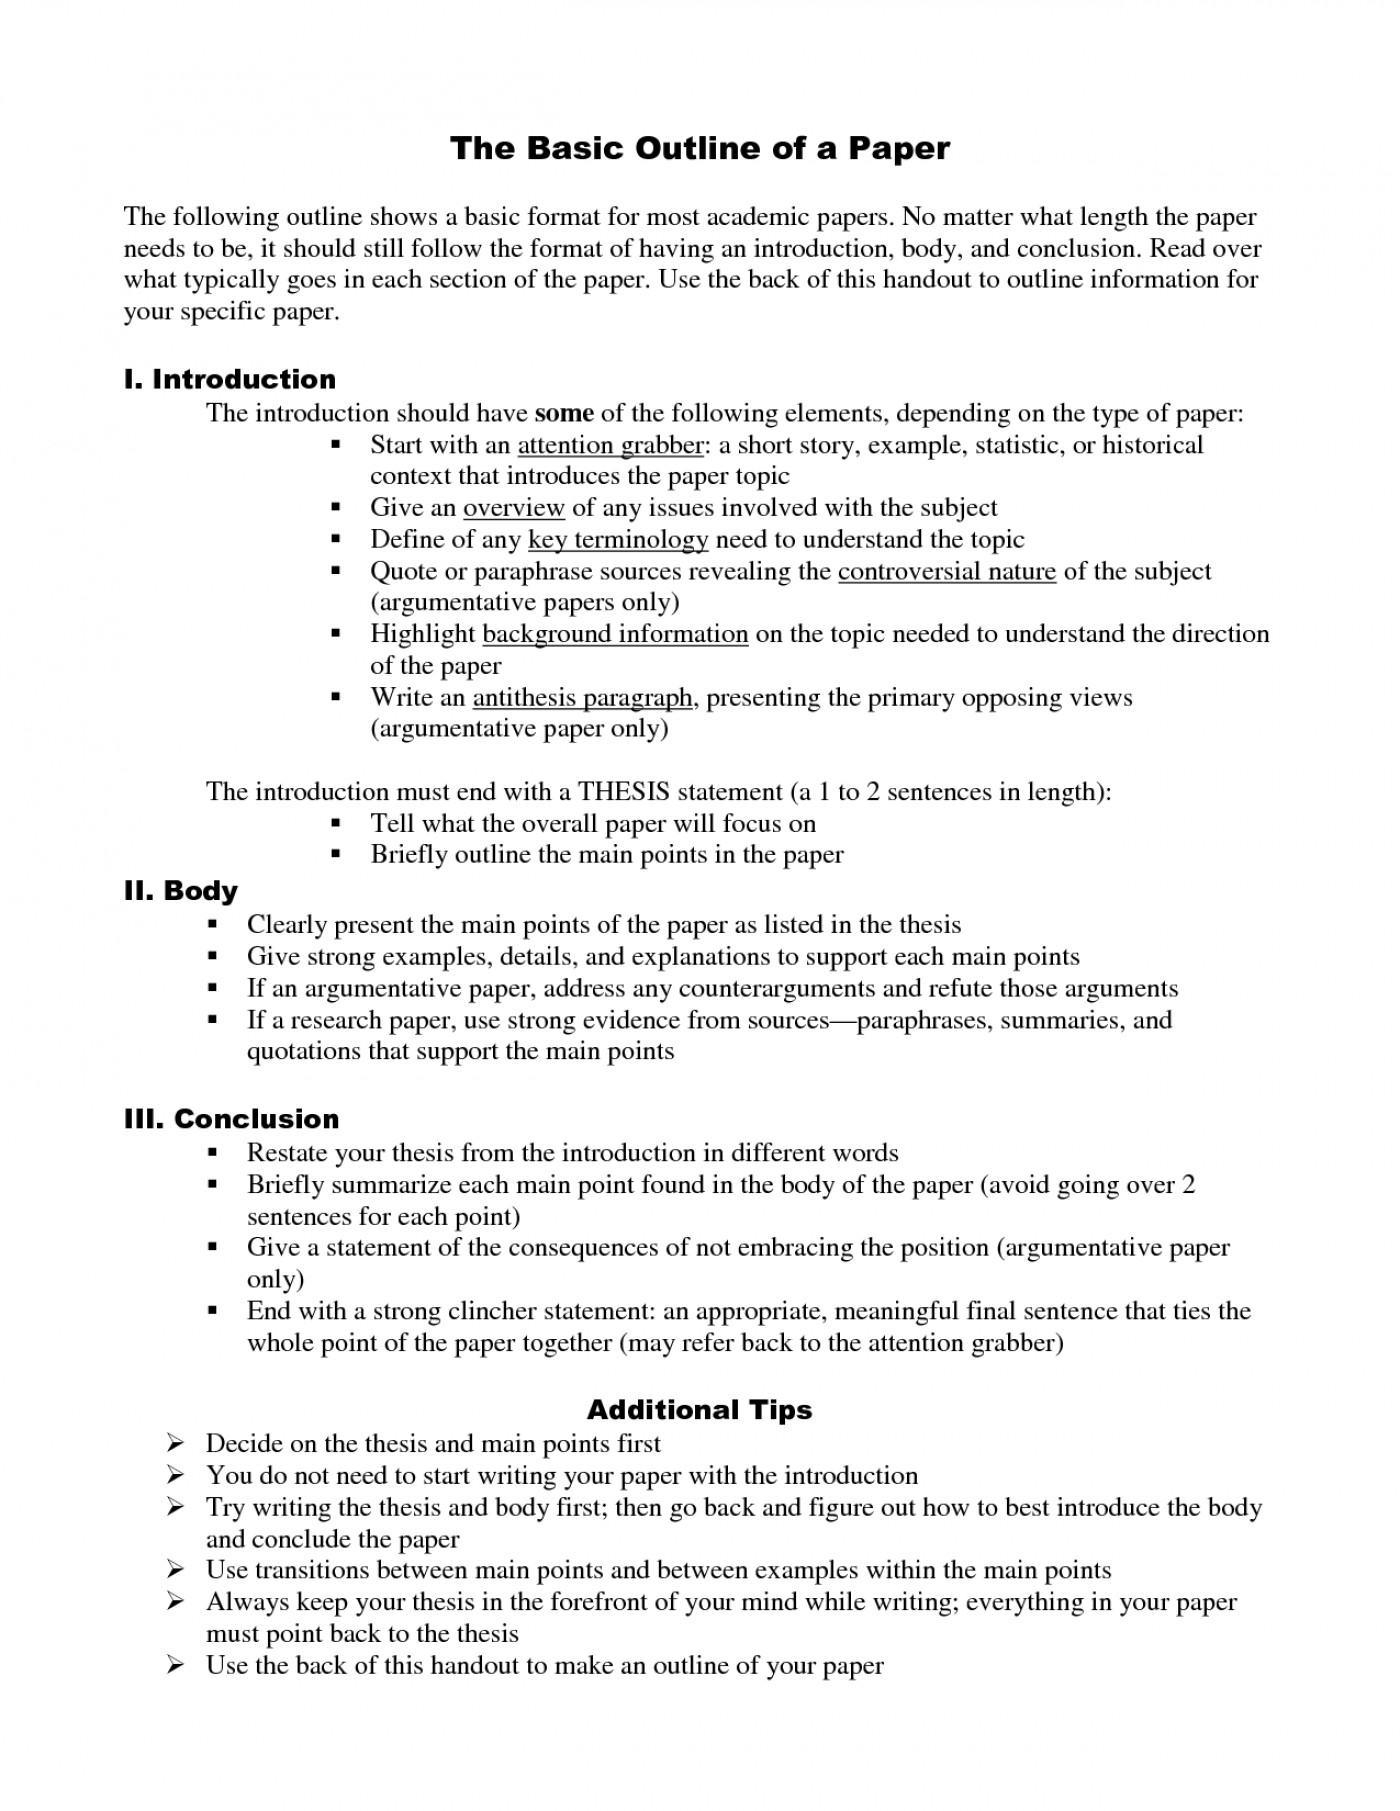 026 How To Write An Outline Essay Excellent In Mla Format For University 1400